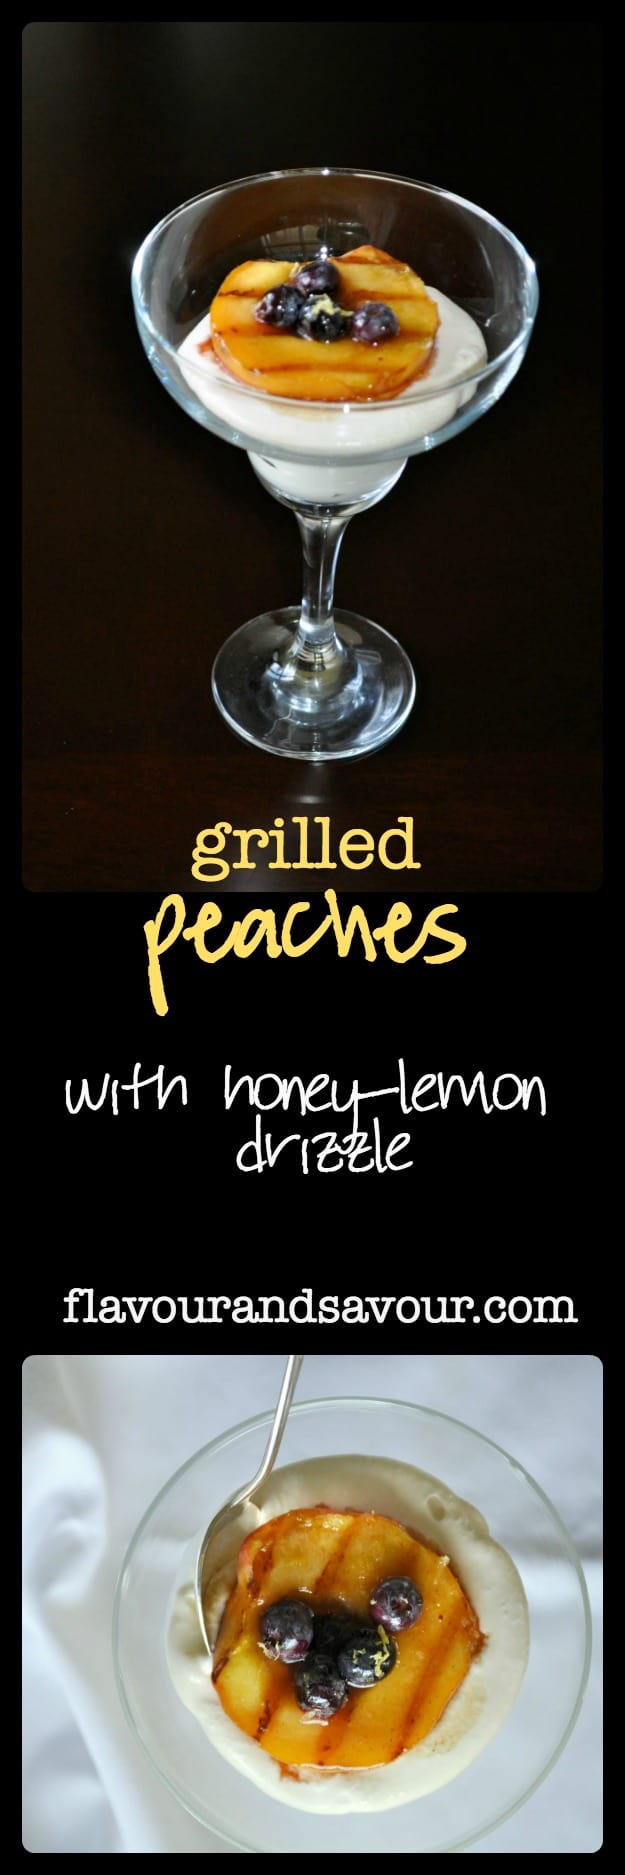 Grilled Peaches with honey-lemon drizzle. Decadent, delicious, but quick and easy. Serve with whipped cream or keep it Paleo and dairy-free with whipped coconut milk.